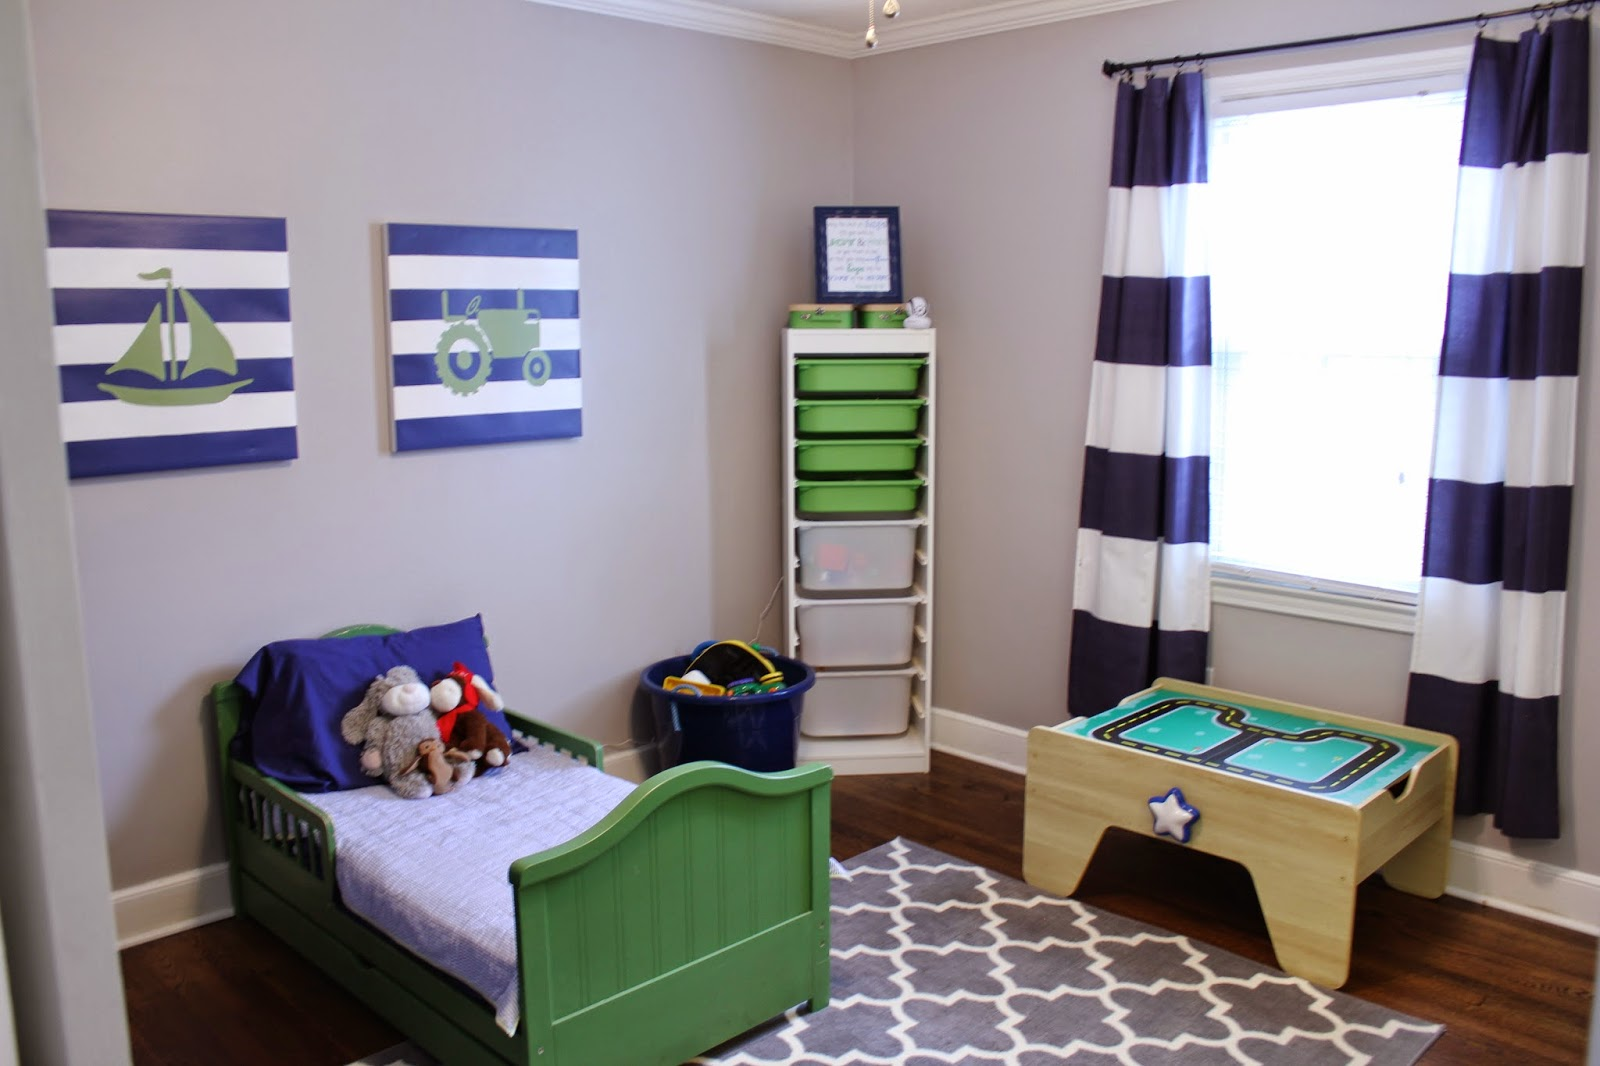 Toddler room ideas for boy finding the perfect room for Bedroom ideas for baby boys